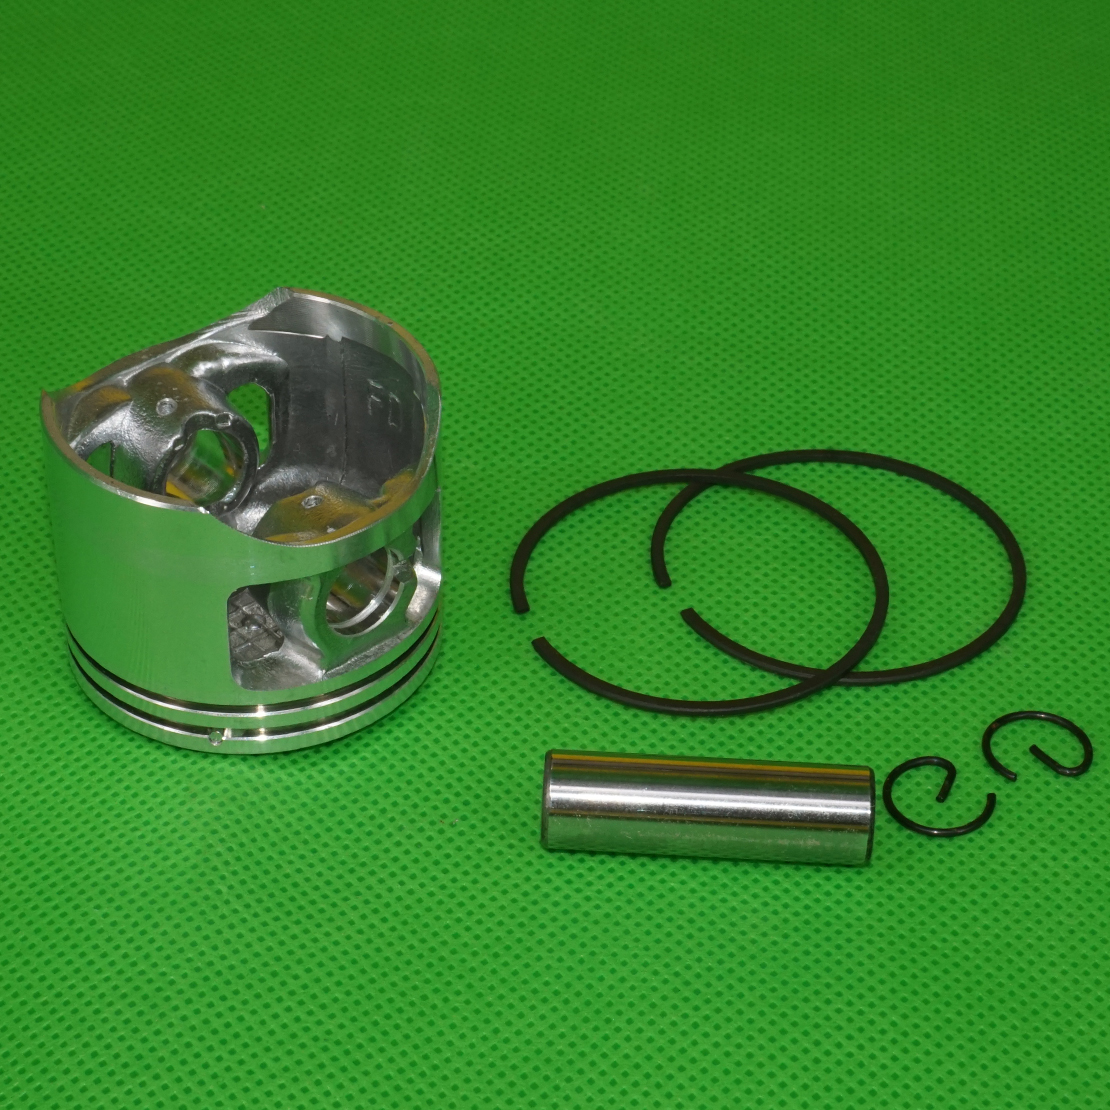 LETAOSK 45mm Piston & Pin & Circlip & Ring Kits Fit For Chinese 4500 5200 5800 45cc 52cc 58cc Chainsaw Accessories